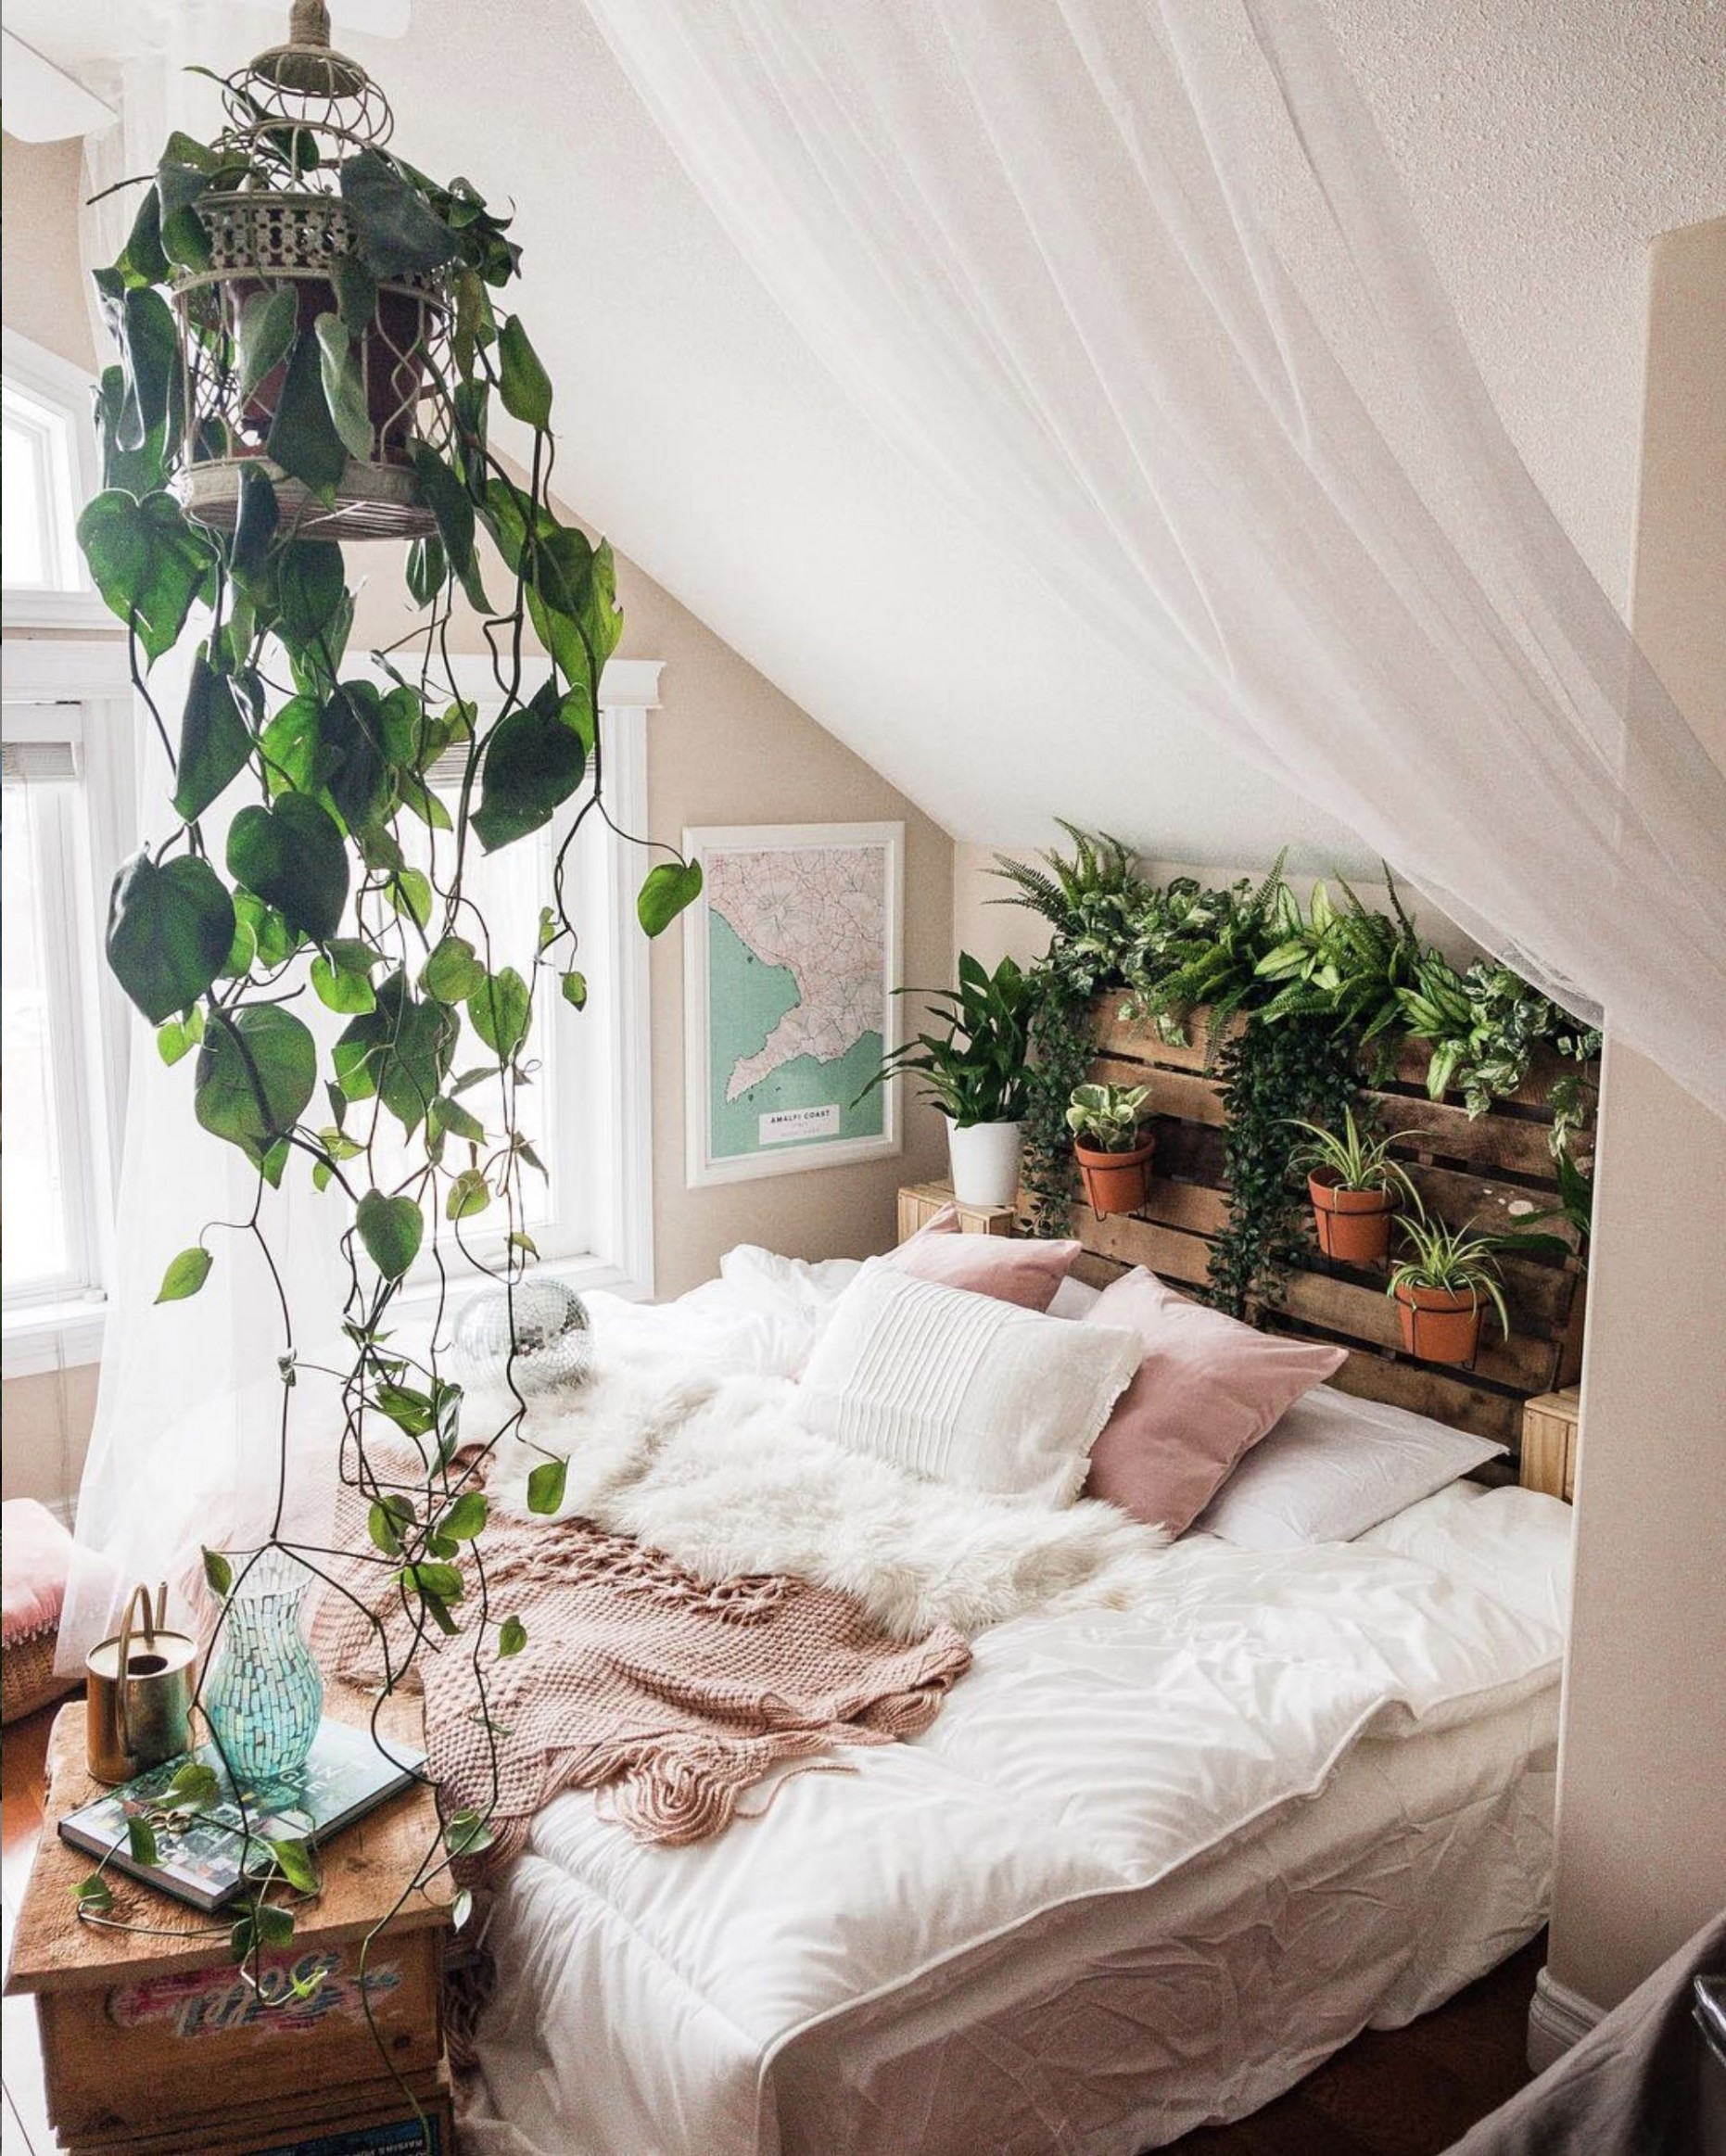 Refreshing bedroom ideas  Bedroom design, Home bedroom, Bedroom  - Bedroom Ideas Plants